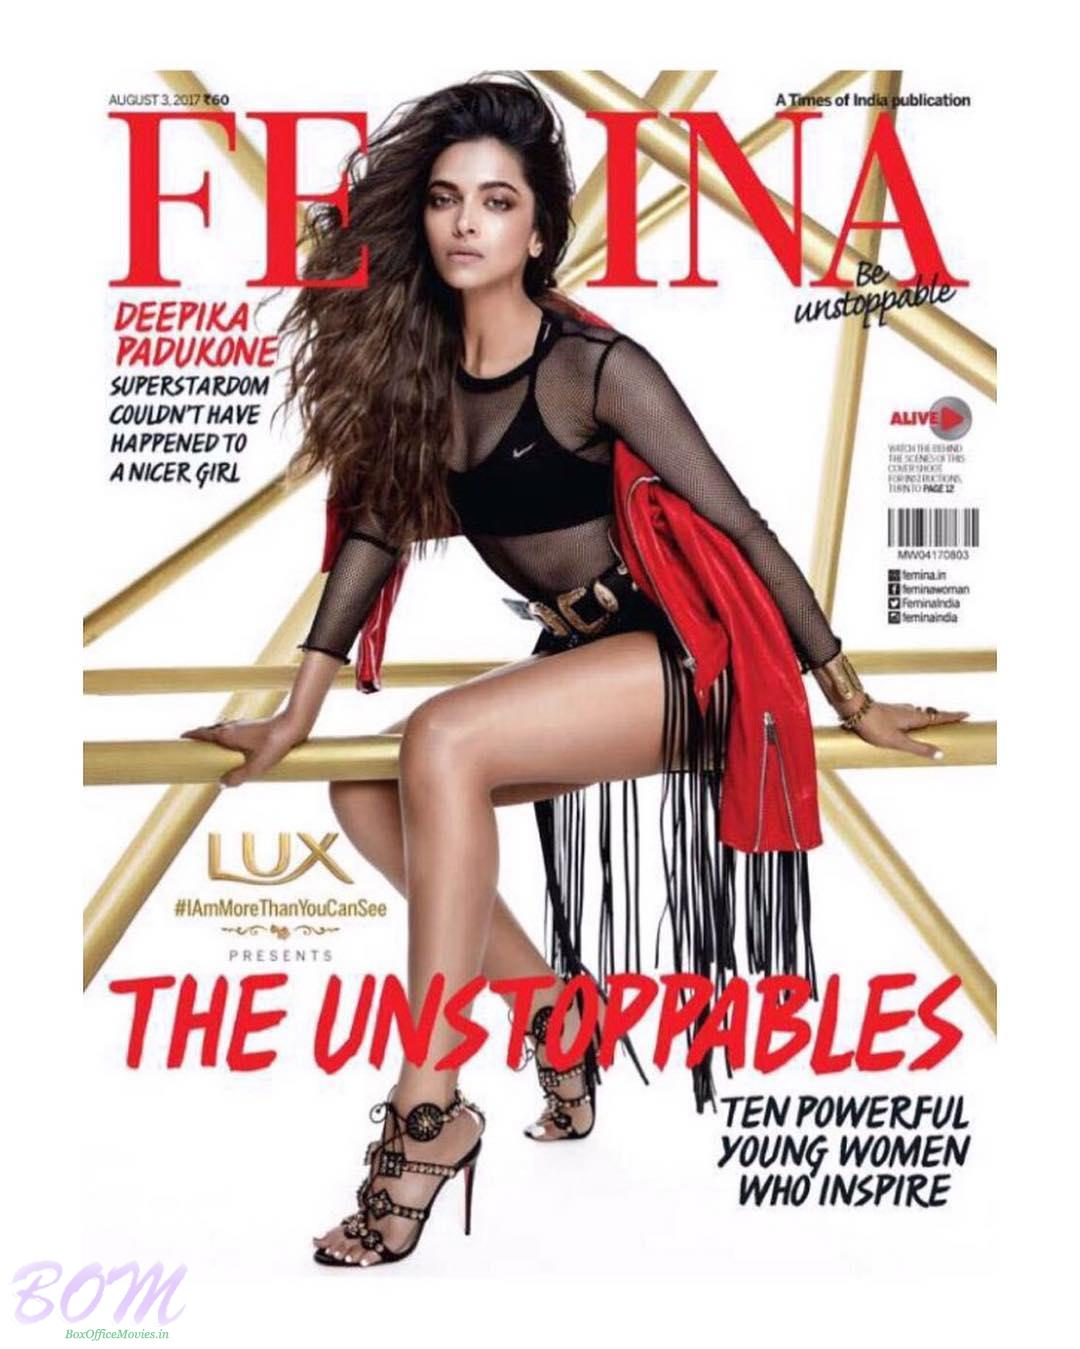 Deepika Padukone as cover girl for FEMINA August 2017 issue